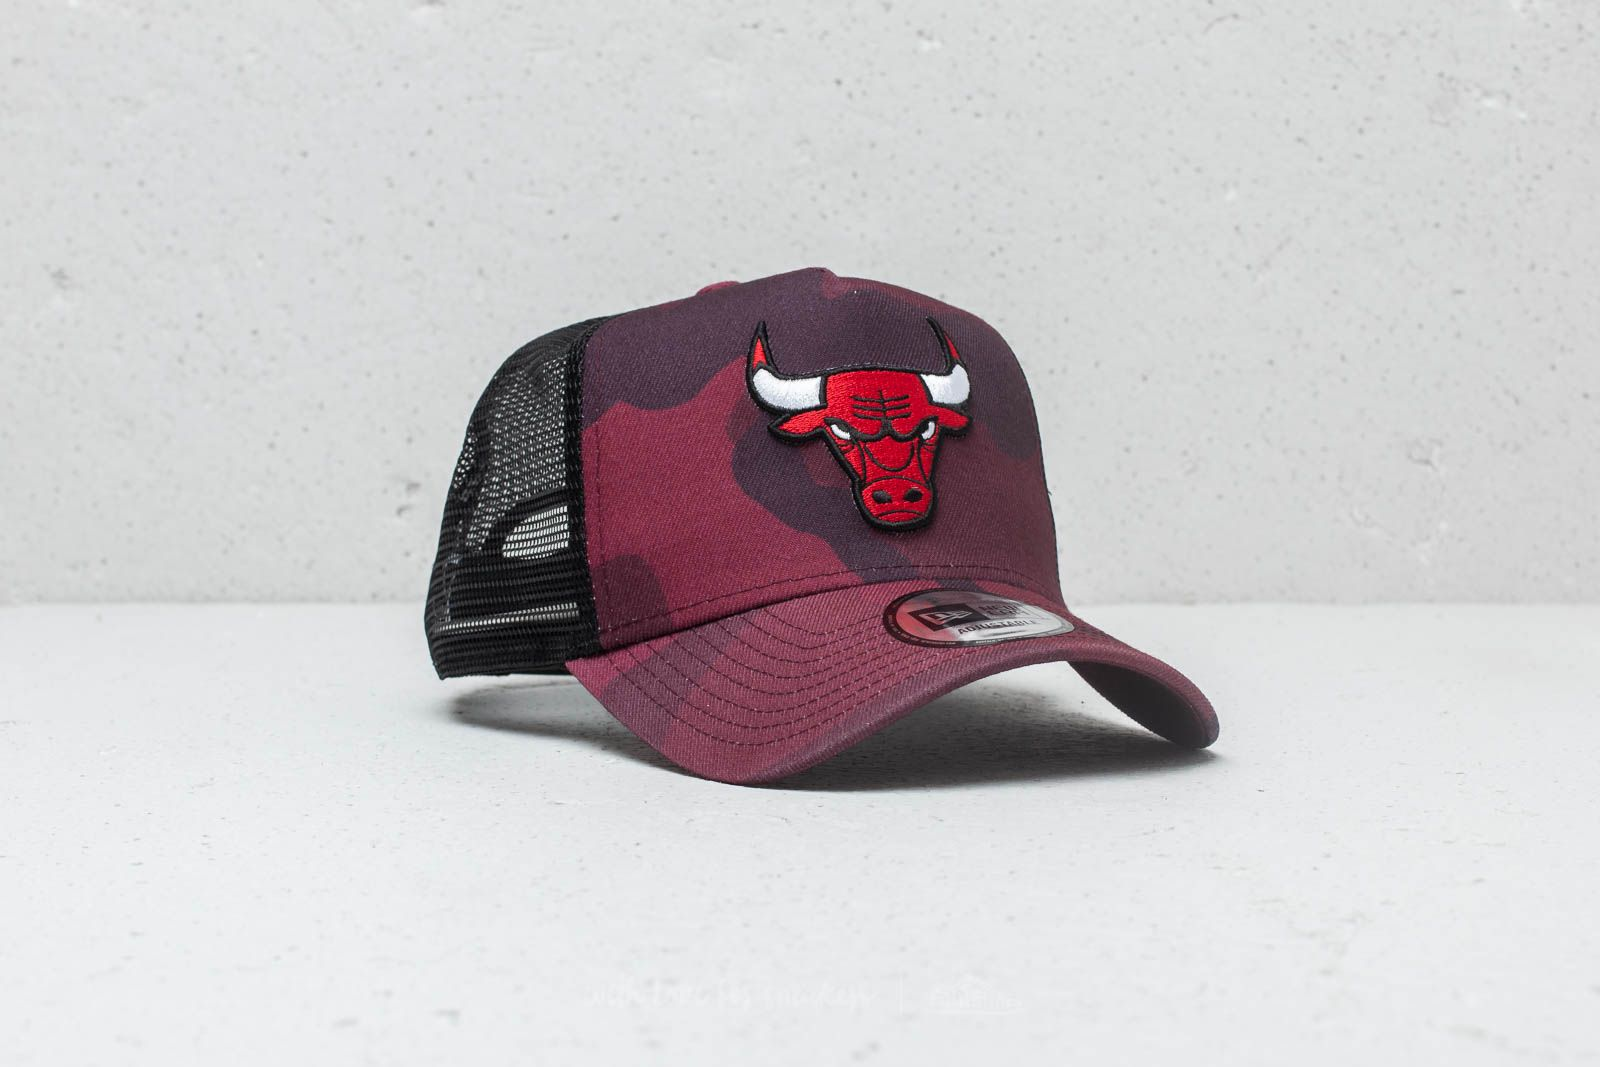 ce32a7123cd New Era NBA Chicago Bulls Trucker Cap Red Camo